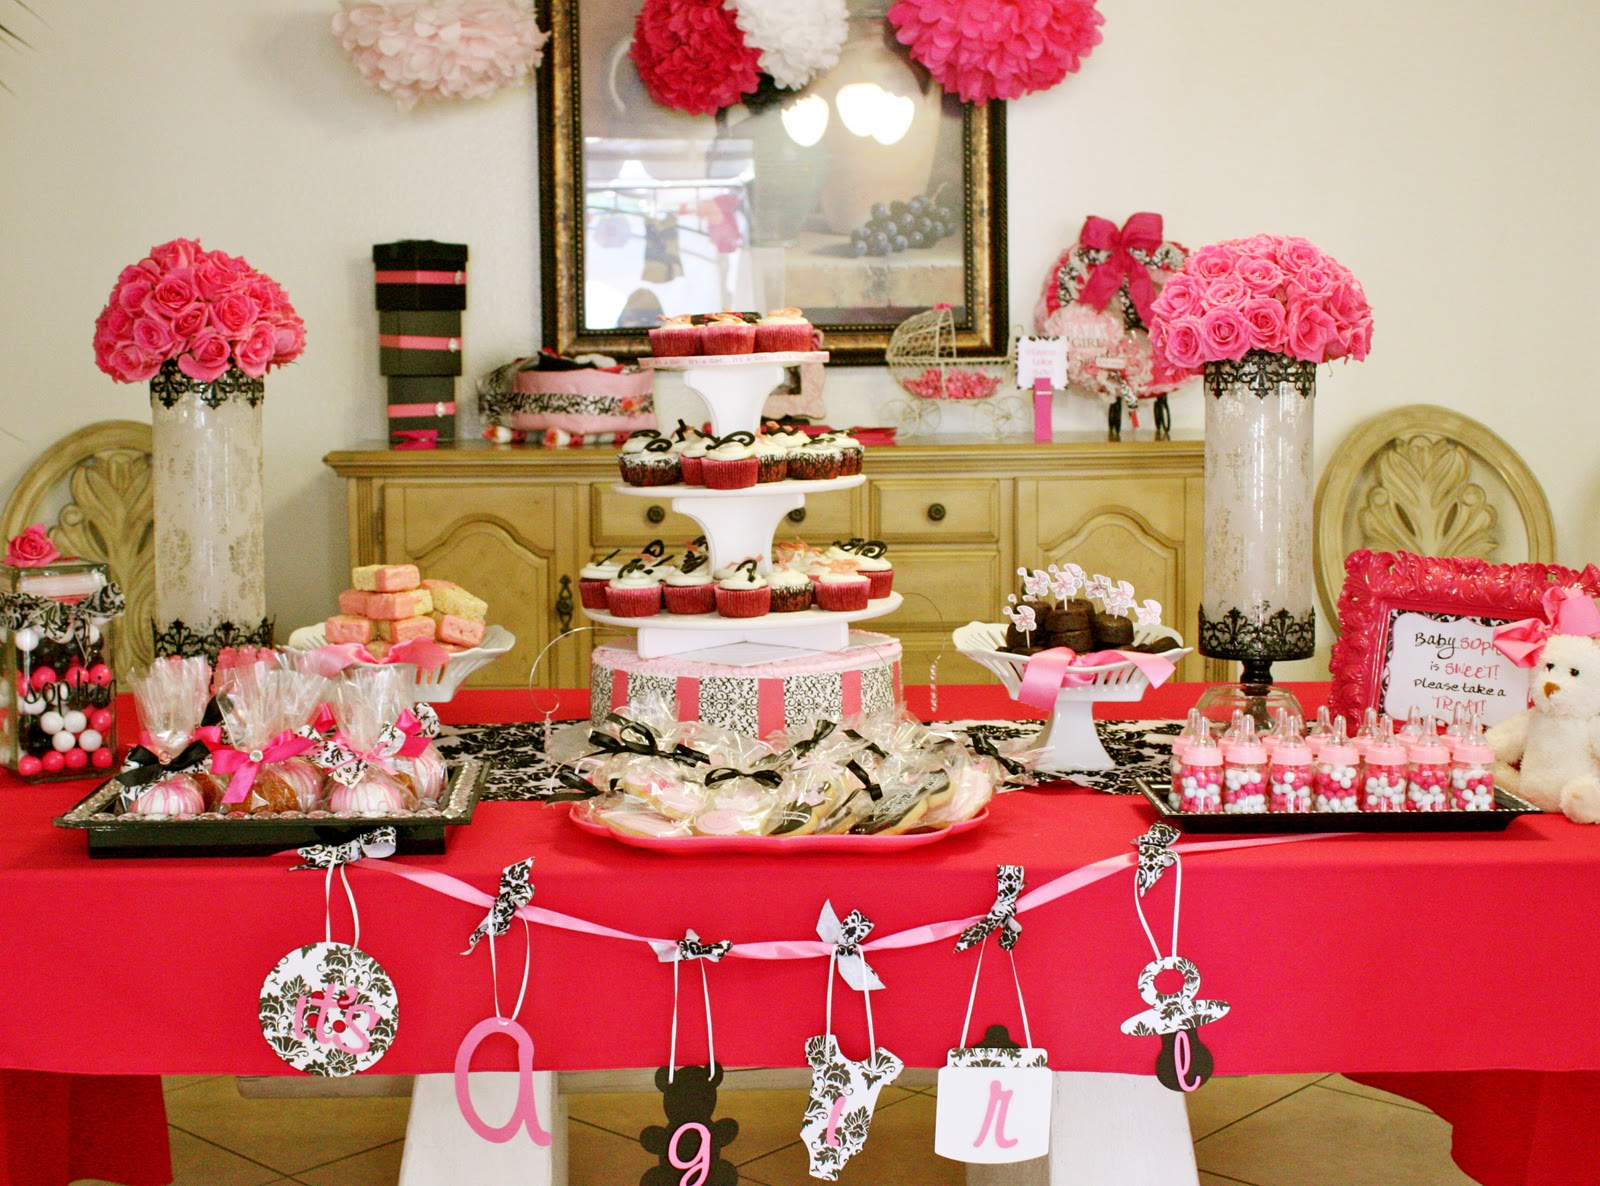 Tini Sophia S Baby Shower Pink Black And White Theme